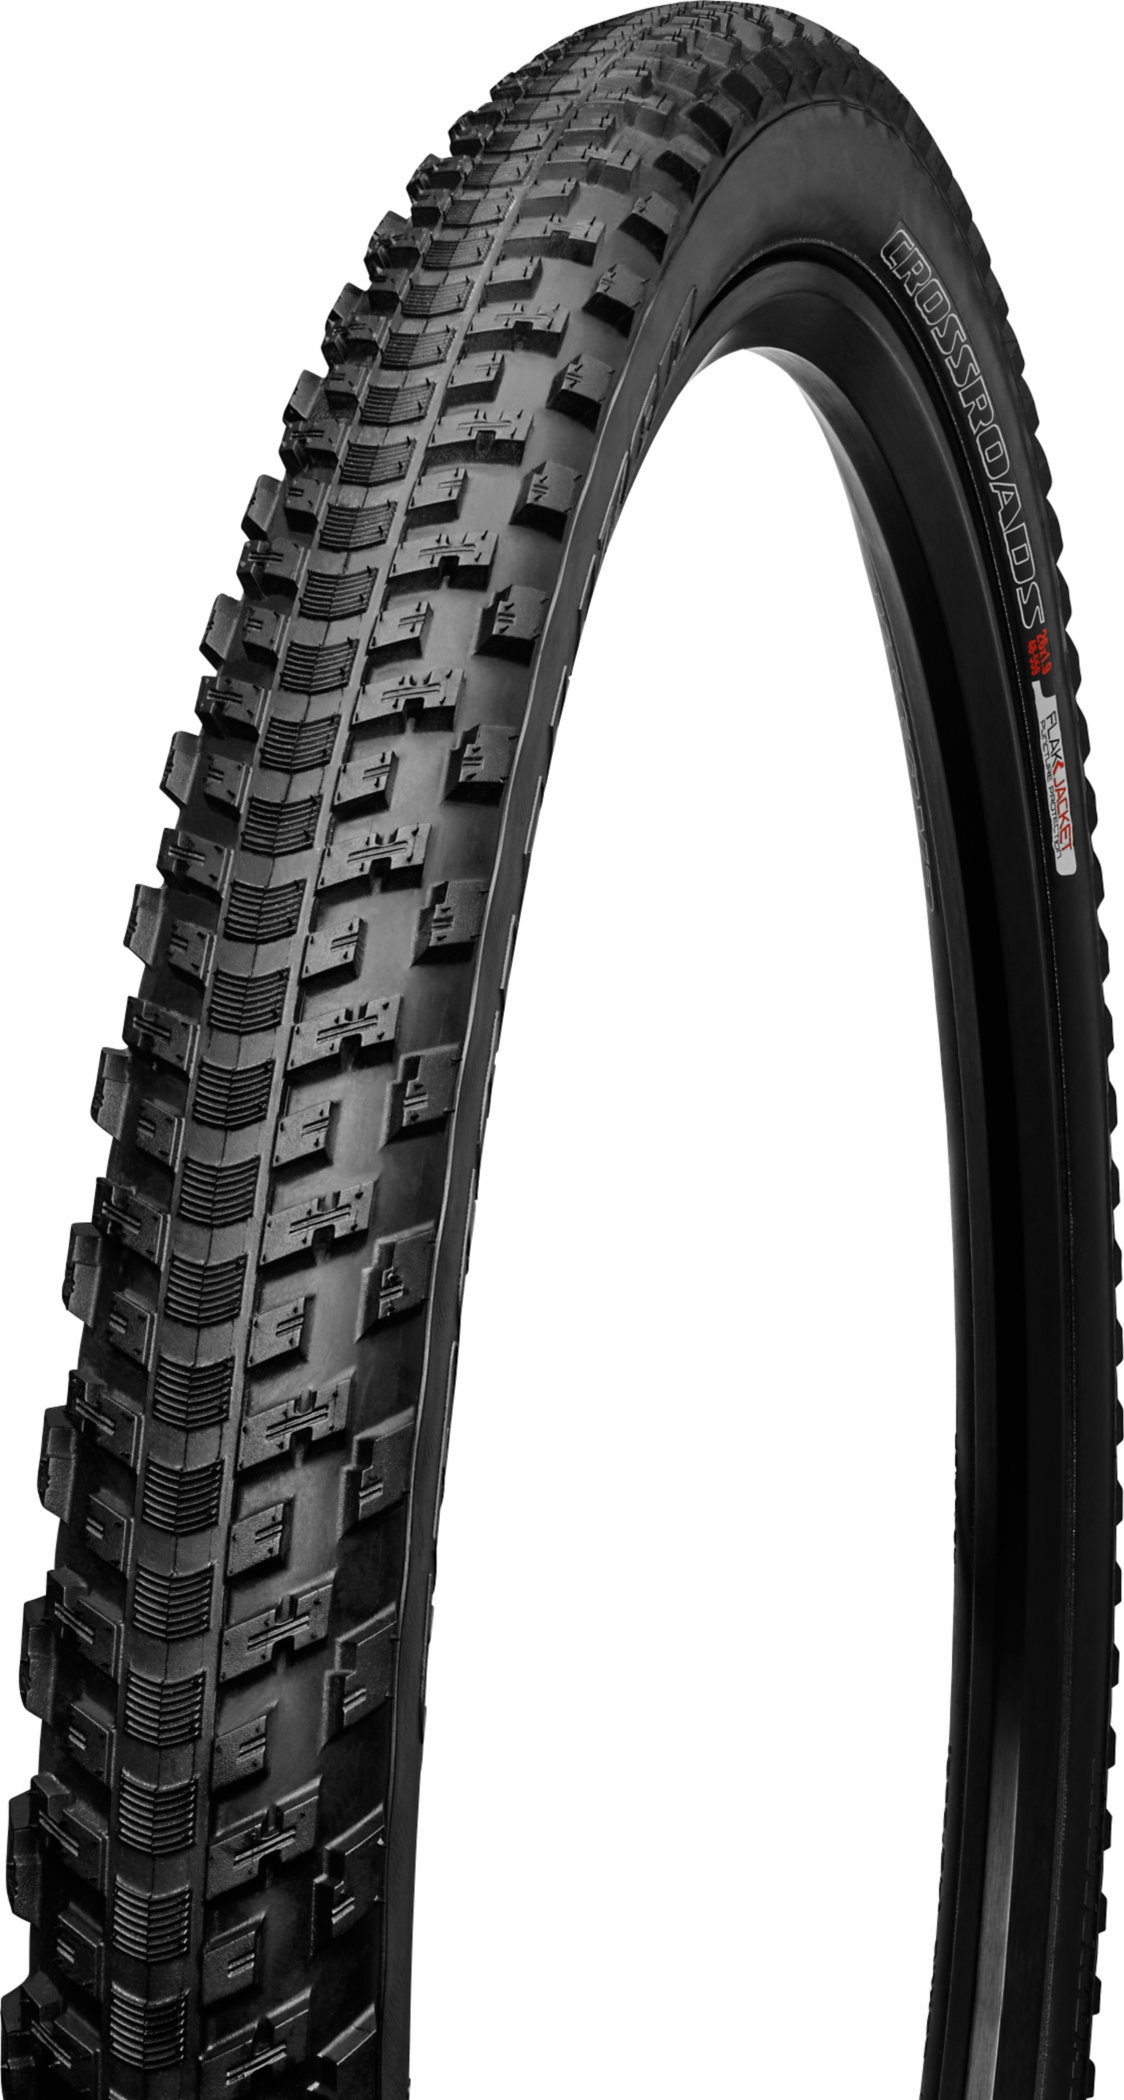 SPECIALIZED CROSSROADS ARM TIRE 700X38 - SPECIALIZED CROSSROADS ARM TIRE 700X38